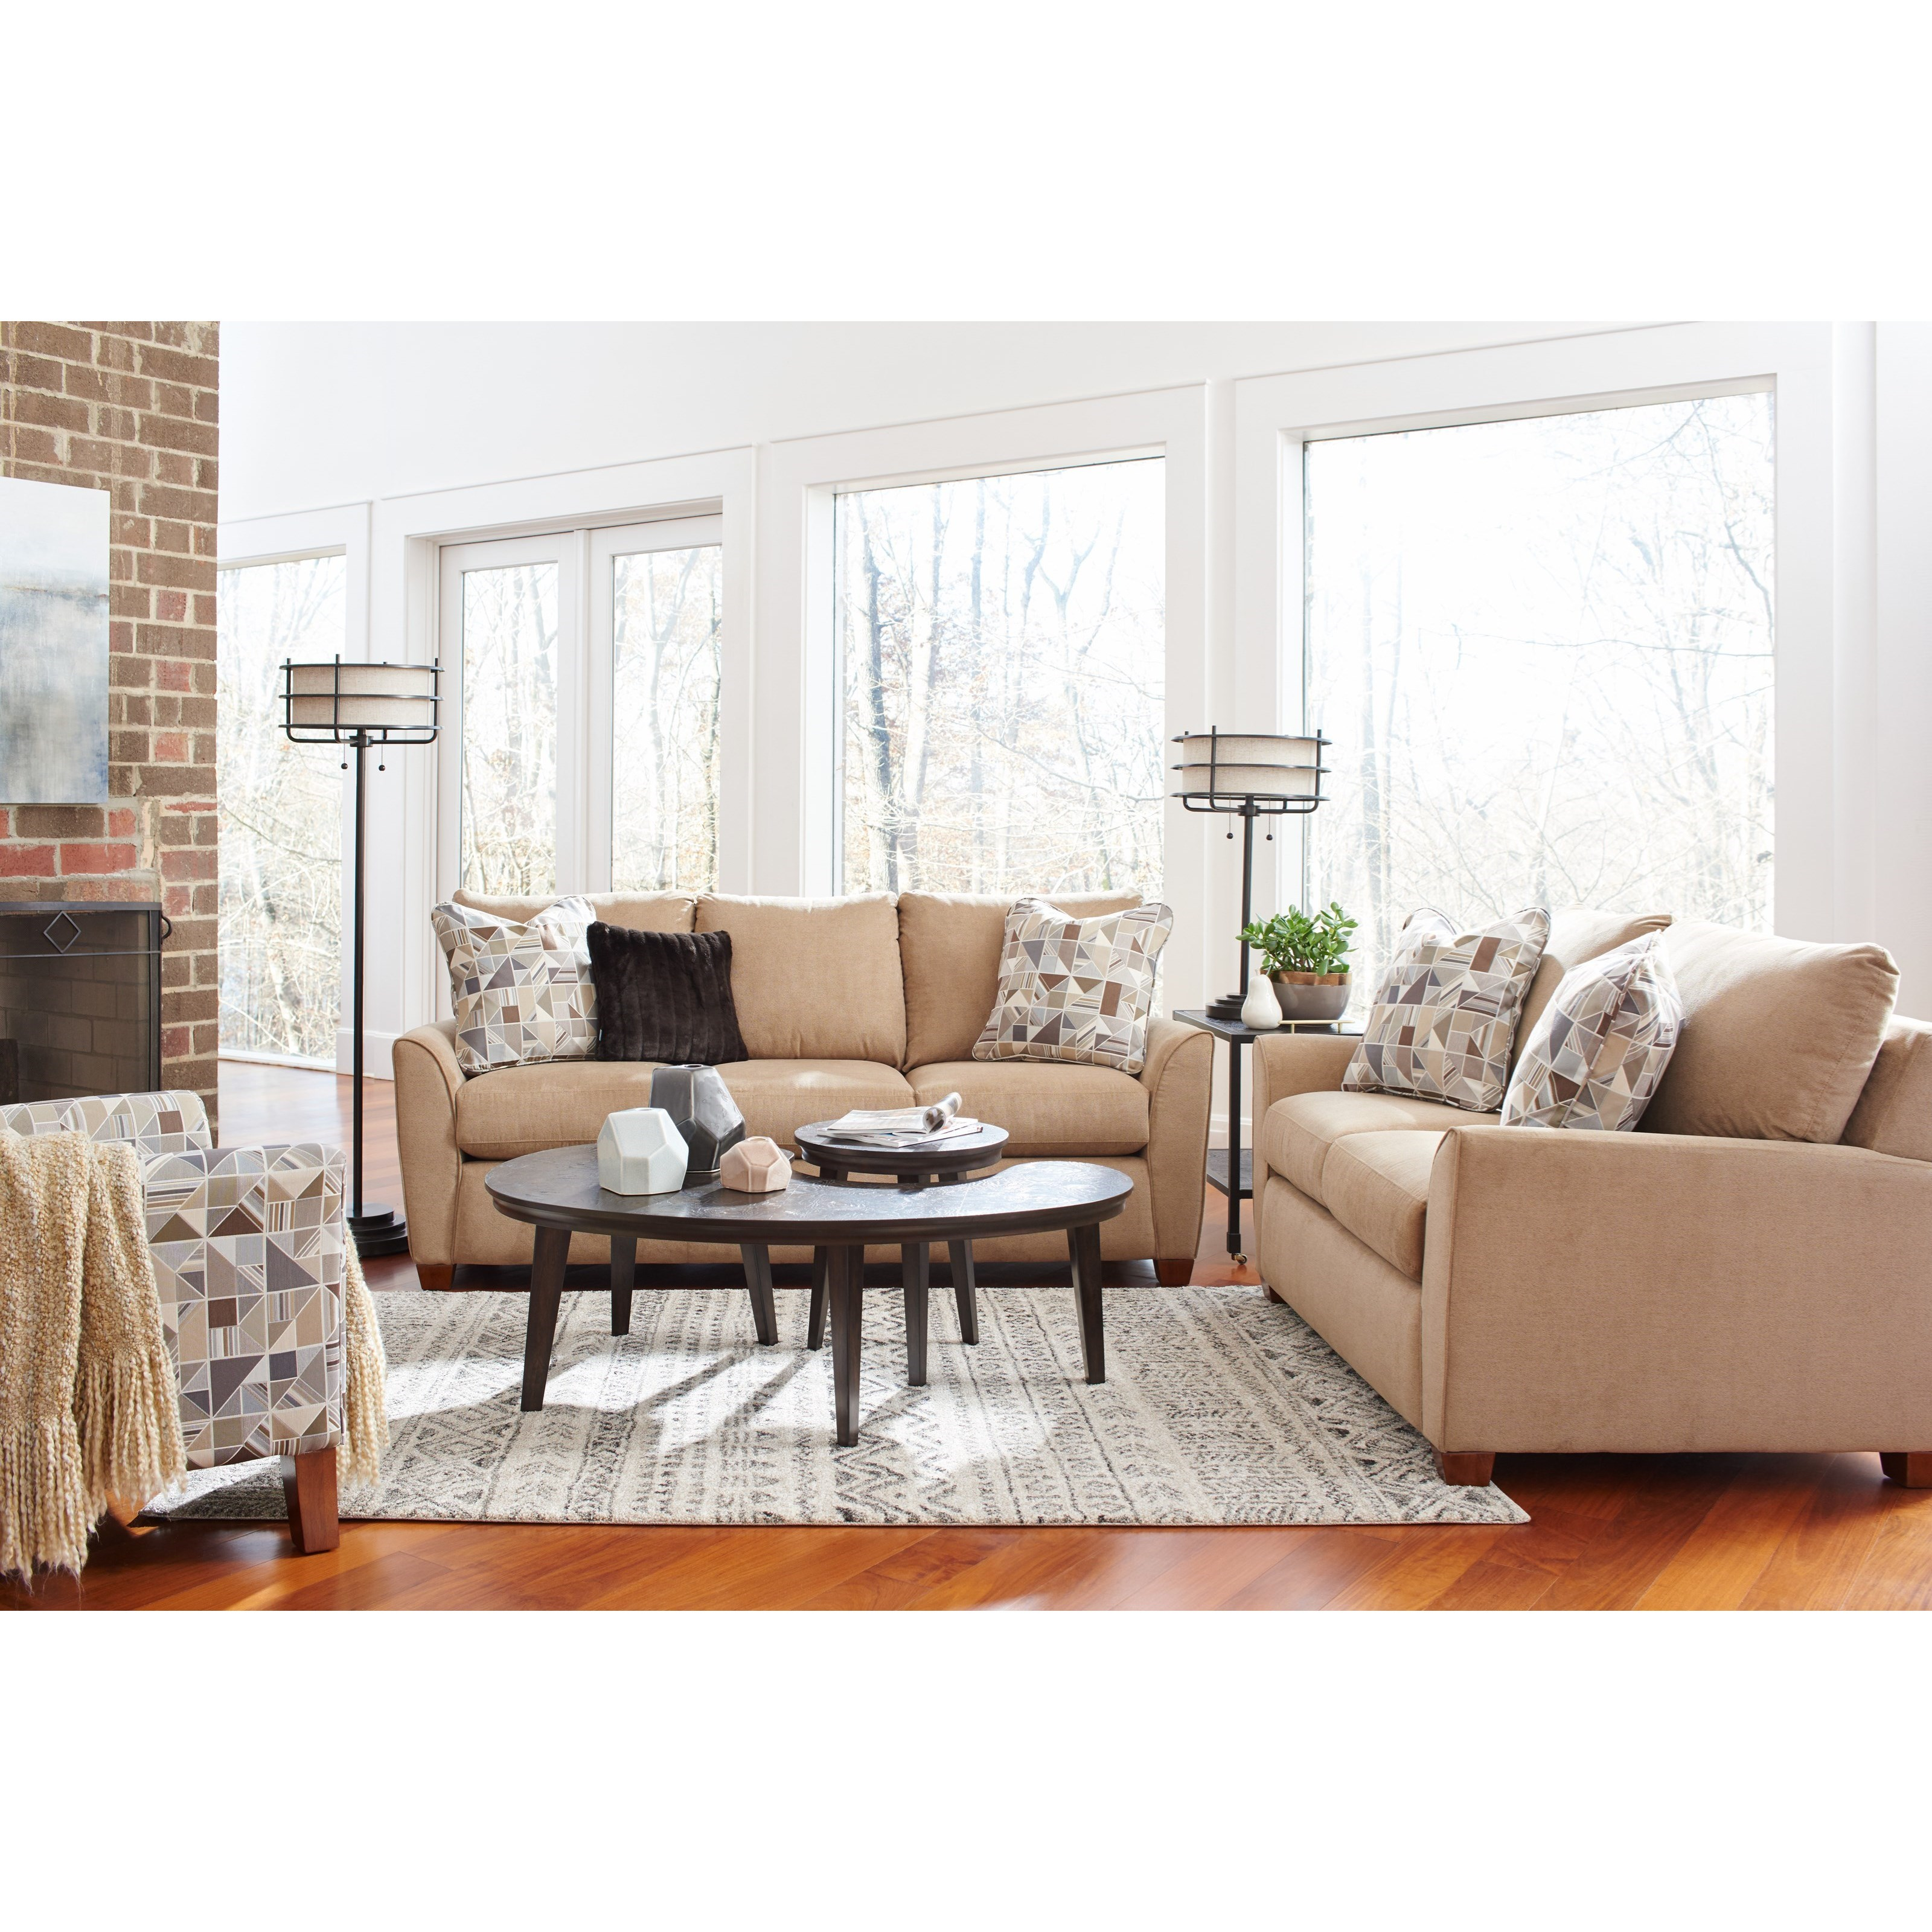 La z boy amy living room group knight furniture for Living room furniture groups